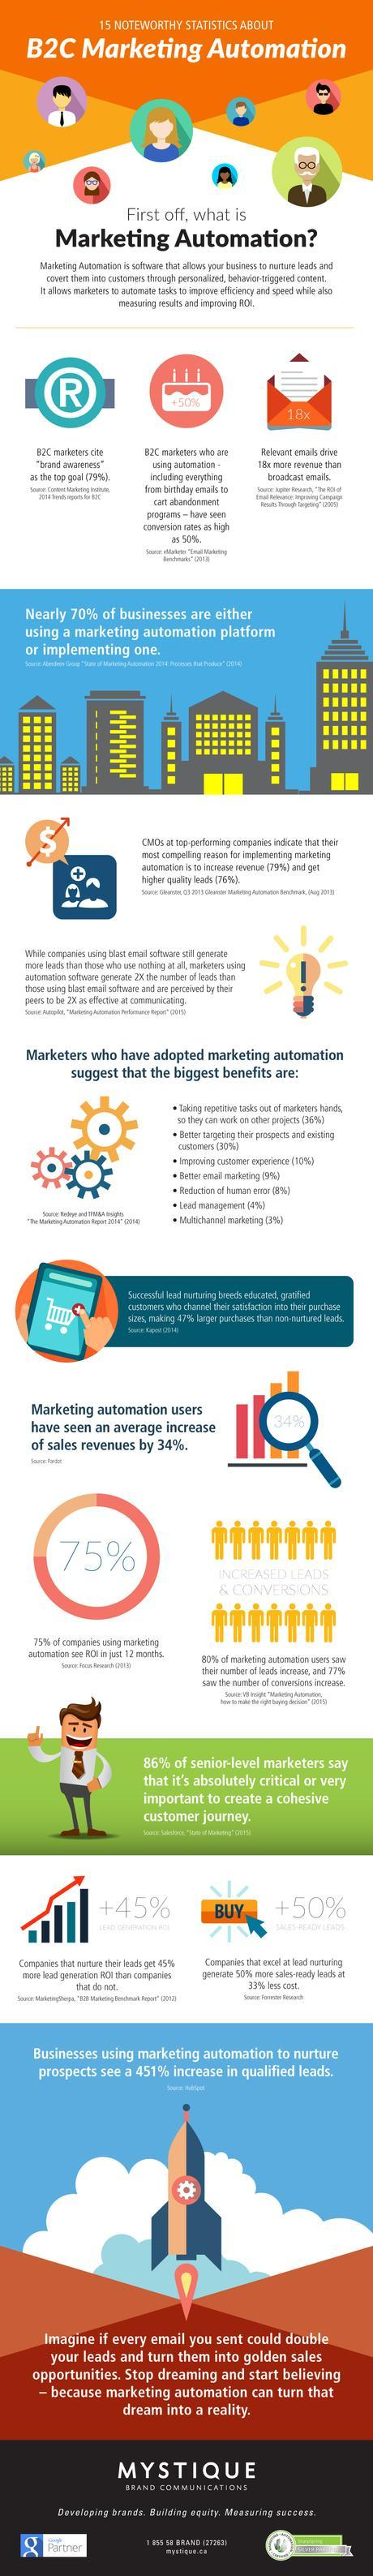 Infographic: 15 noteworthy statistics about B2C Marketing Automation